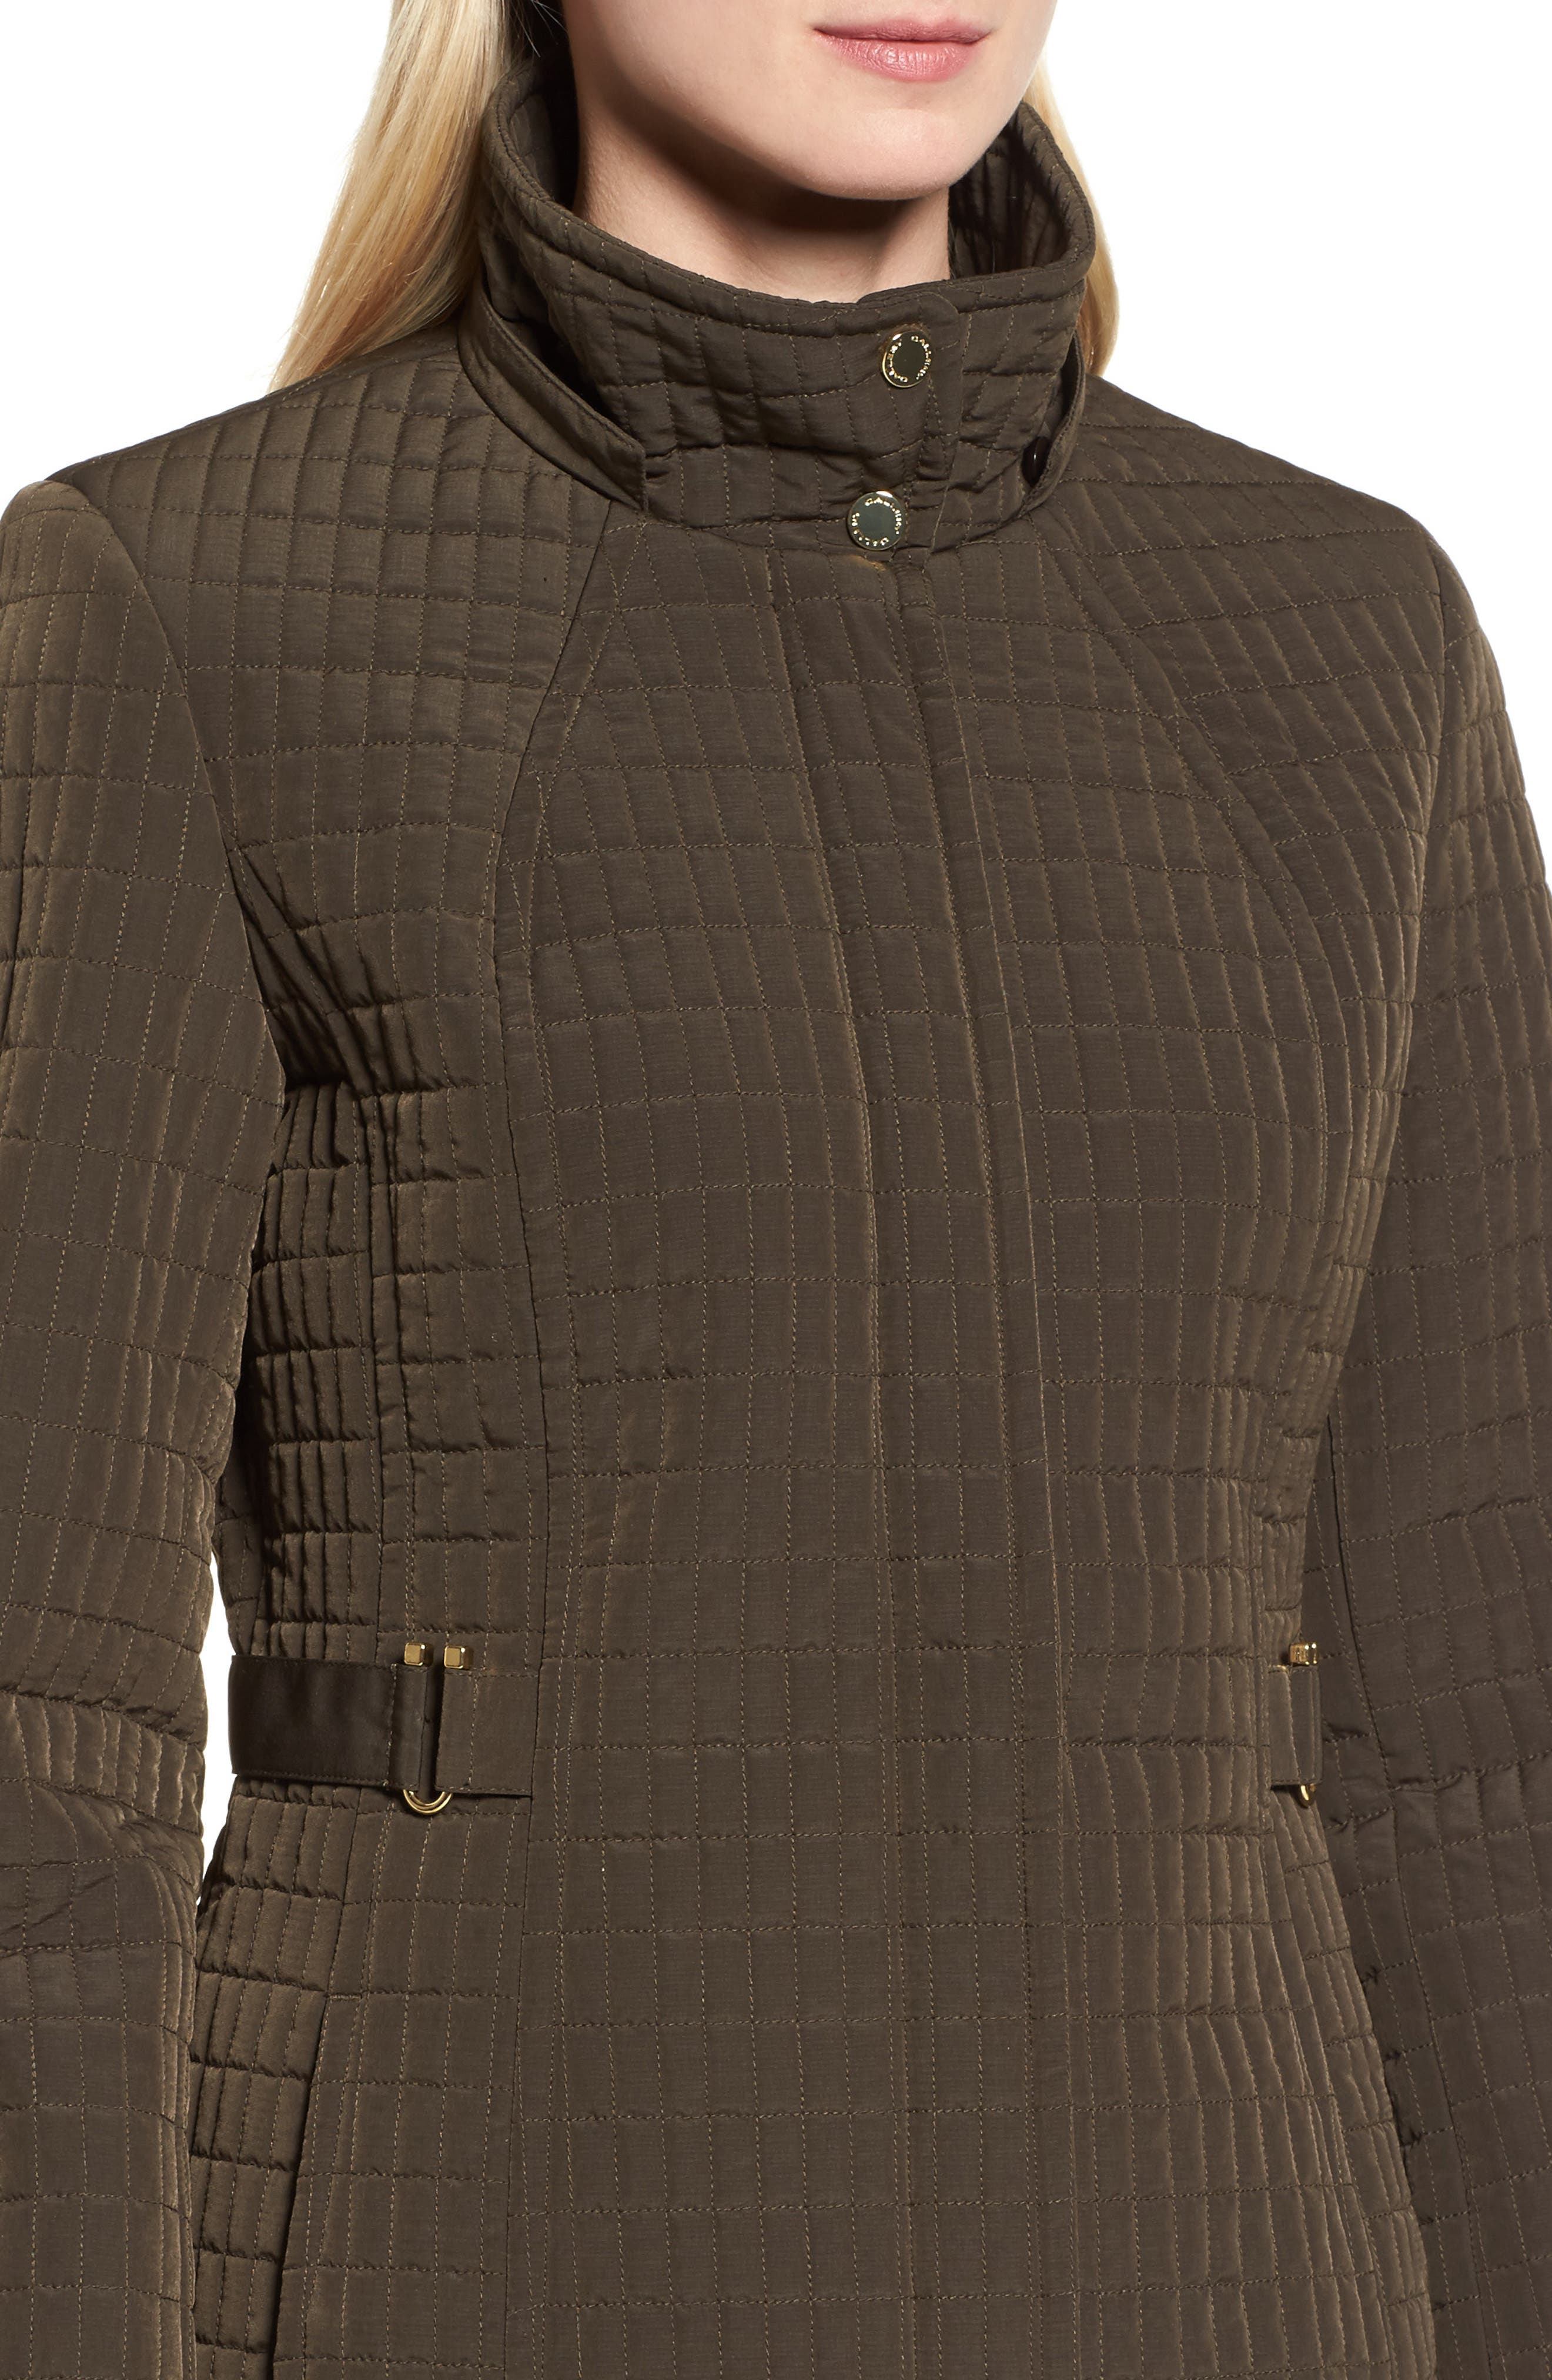 Quilted Jacket,                             Alternate thumbnail 4, color,                             Fatigue